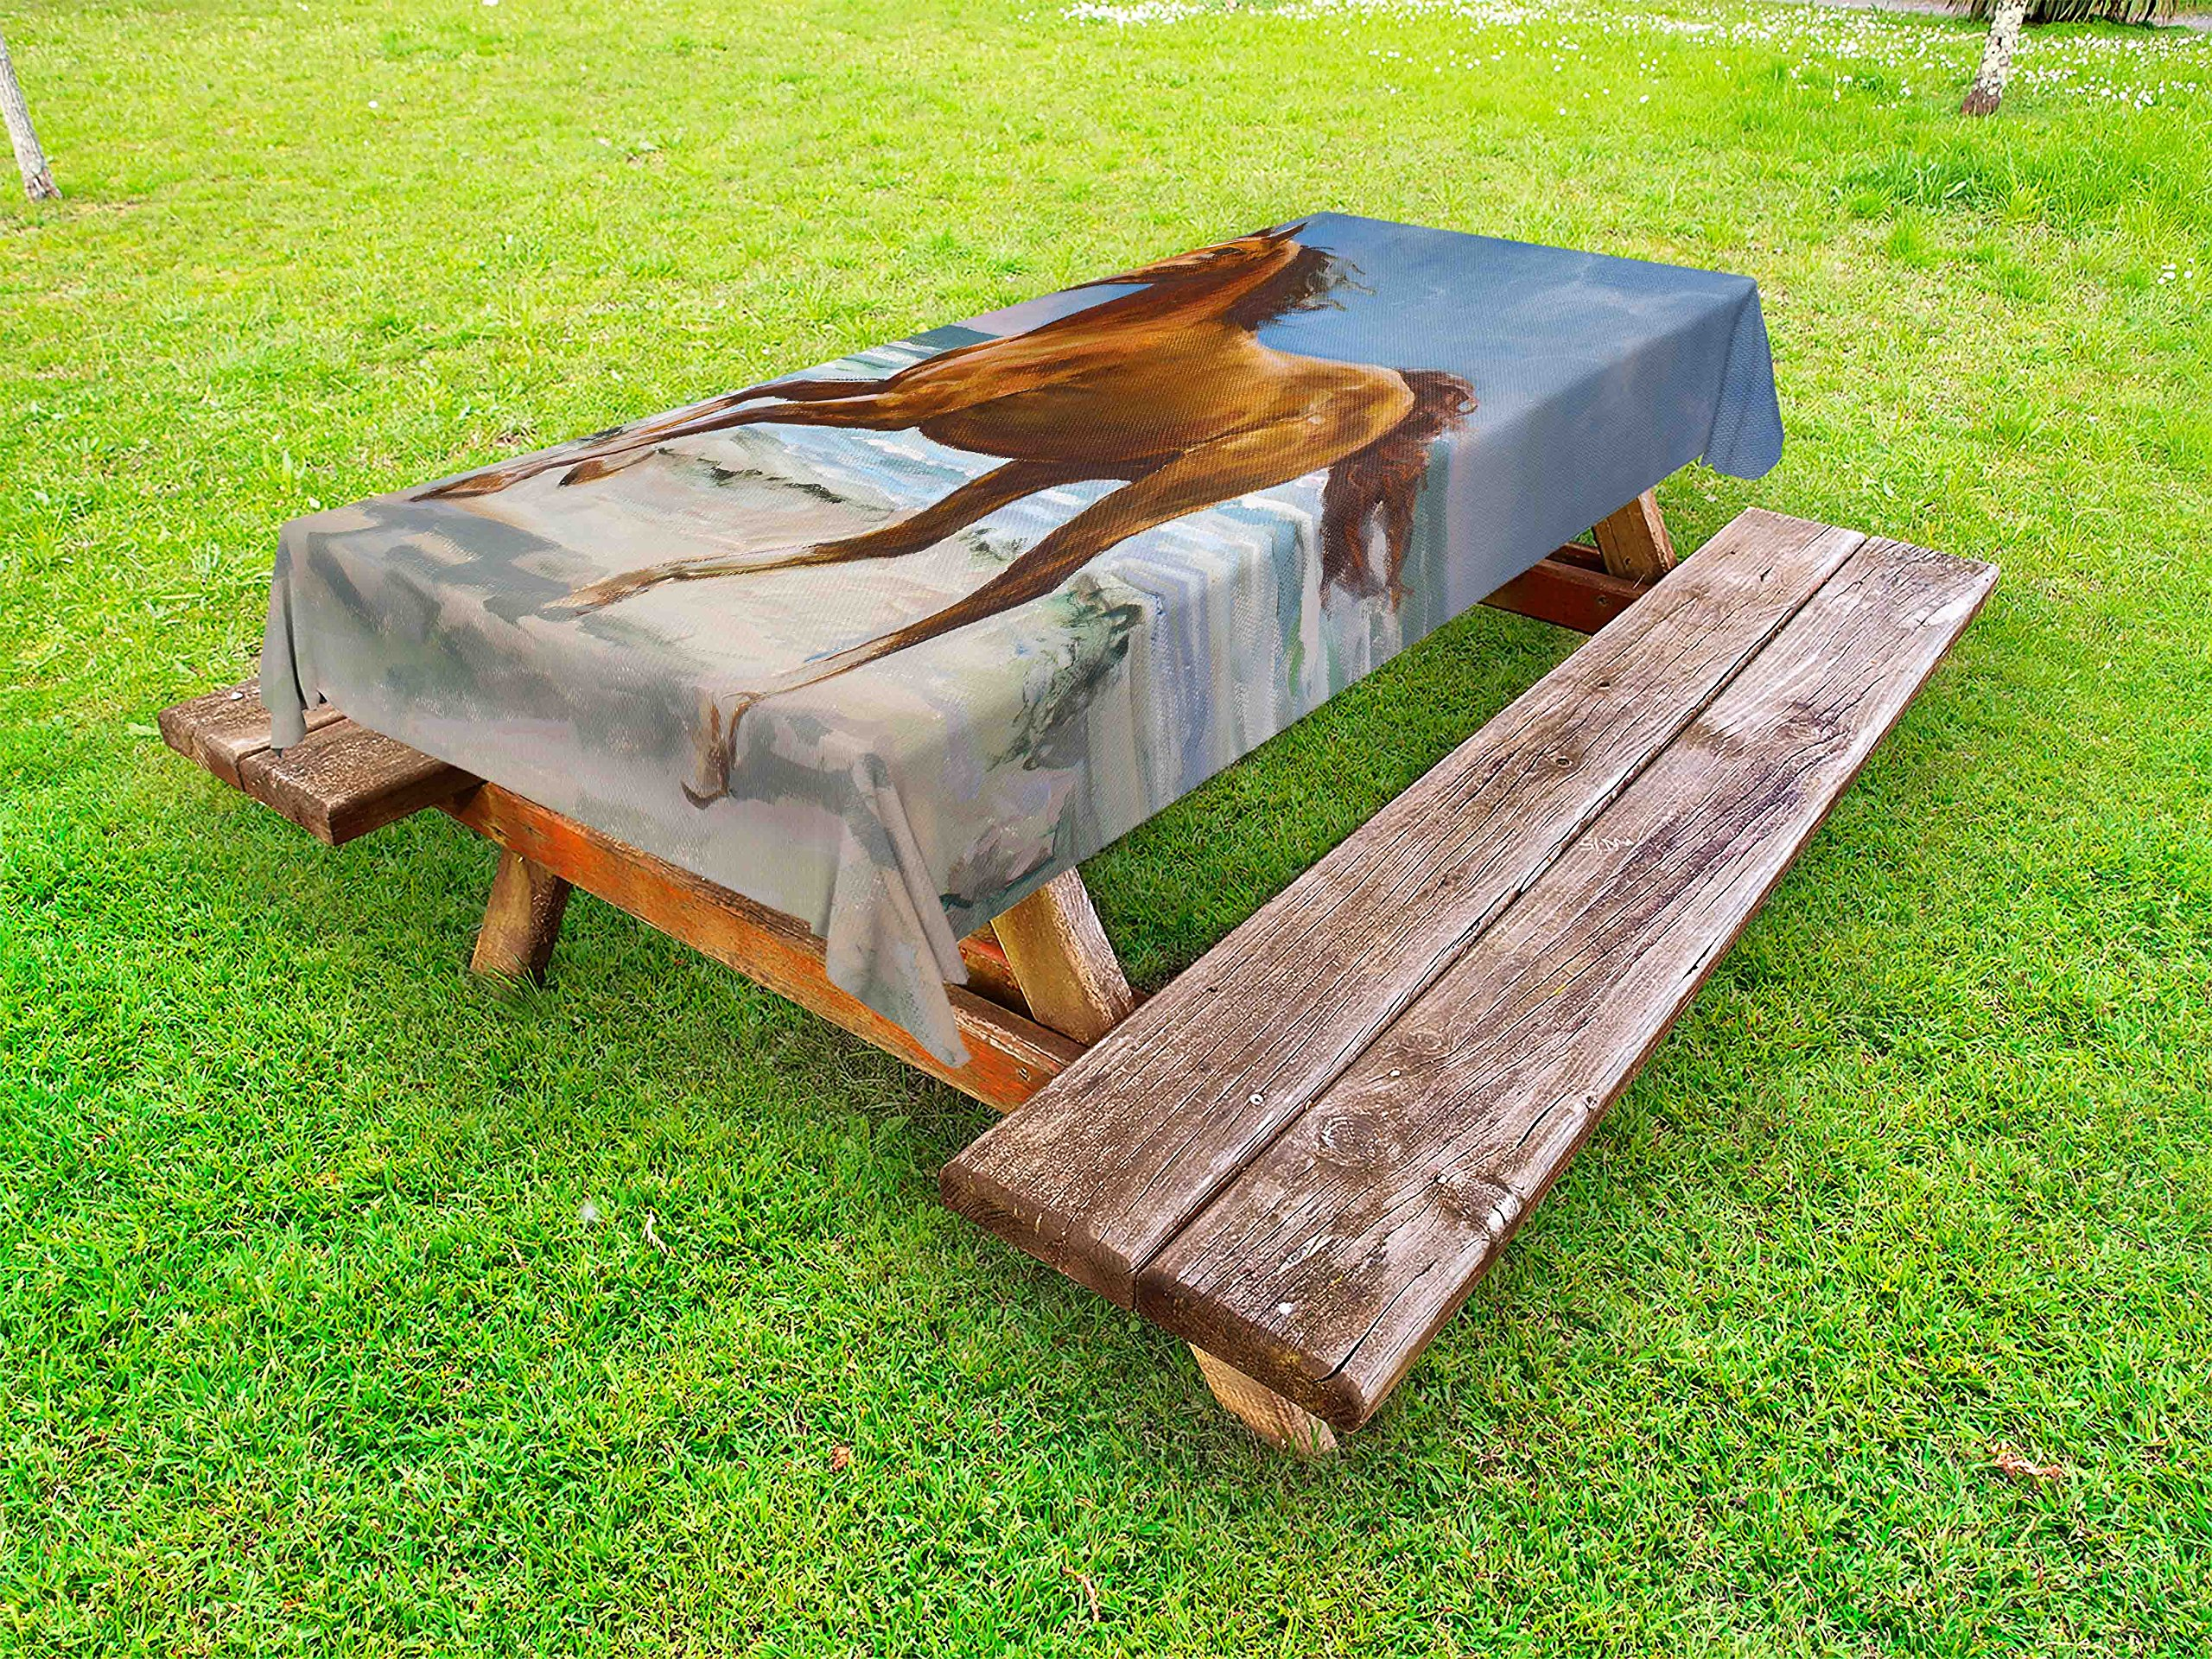 Lunarable Animal Outdoor Tablecloth, Nature Themed Painting of Chestnut Horse Galloping on Shore Print, Decorative Washable Picnic Table Cloth, 58 X 84 Inches, Slate Blue Pale Caramel